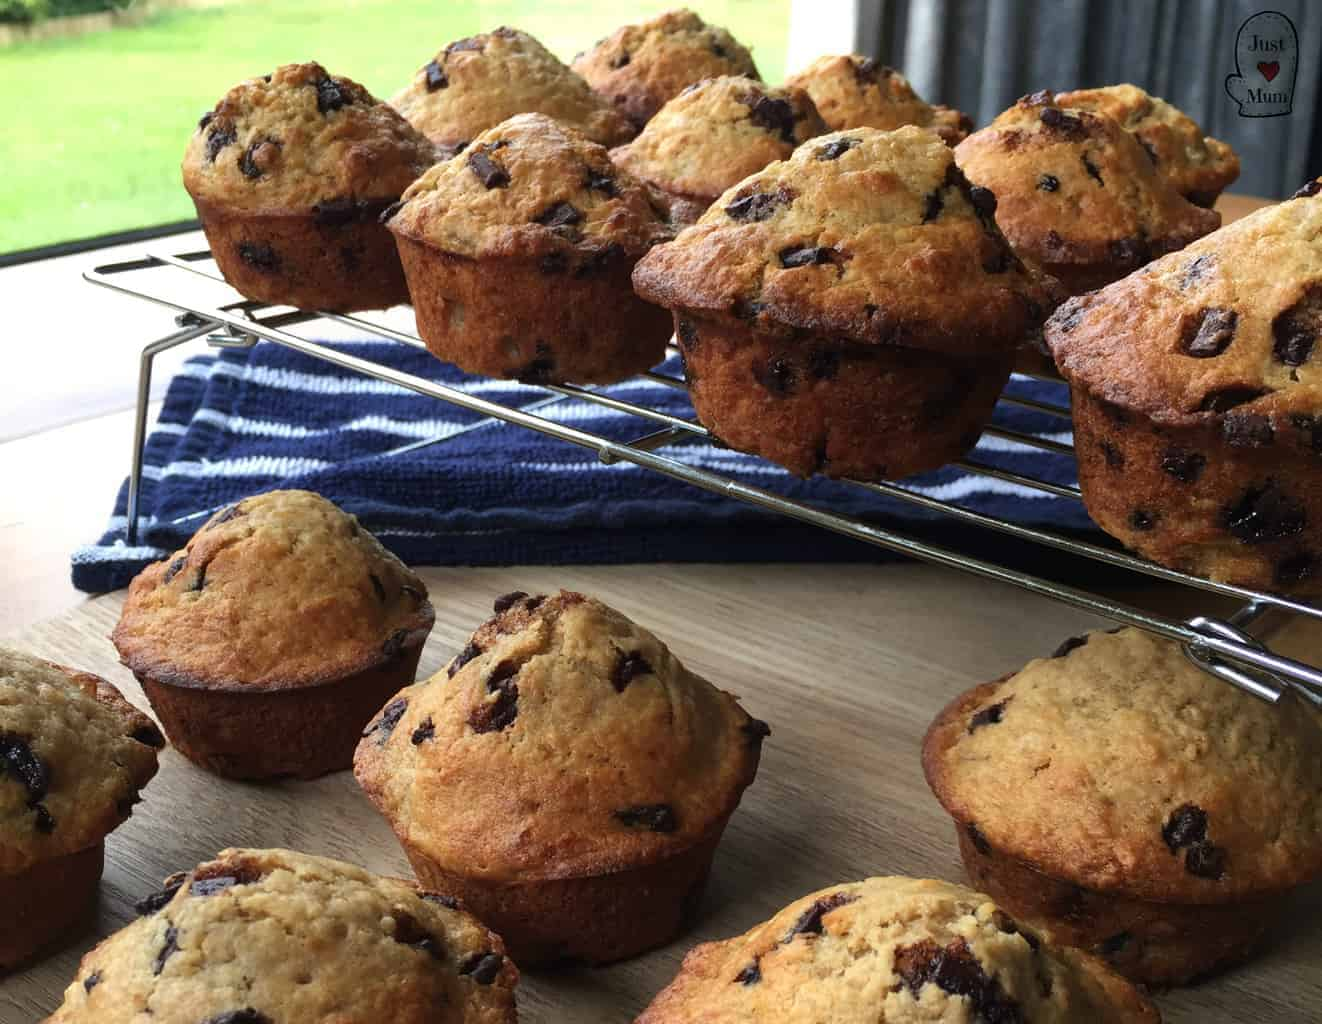 Banana Chocolate Chip Muffins - Just A Mum